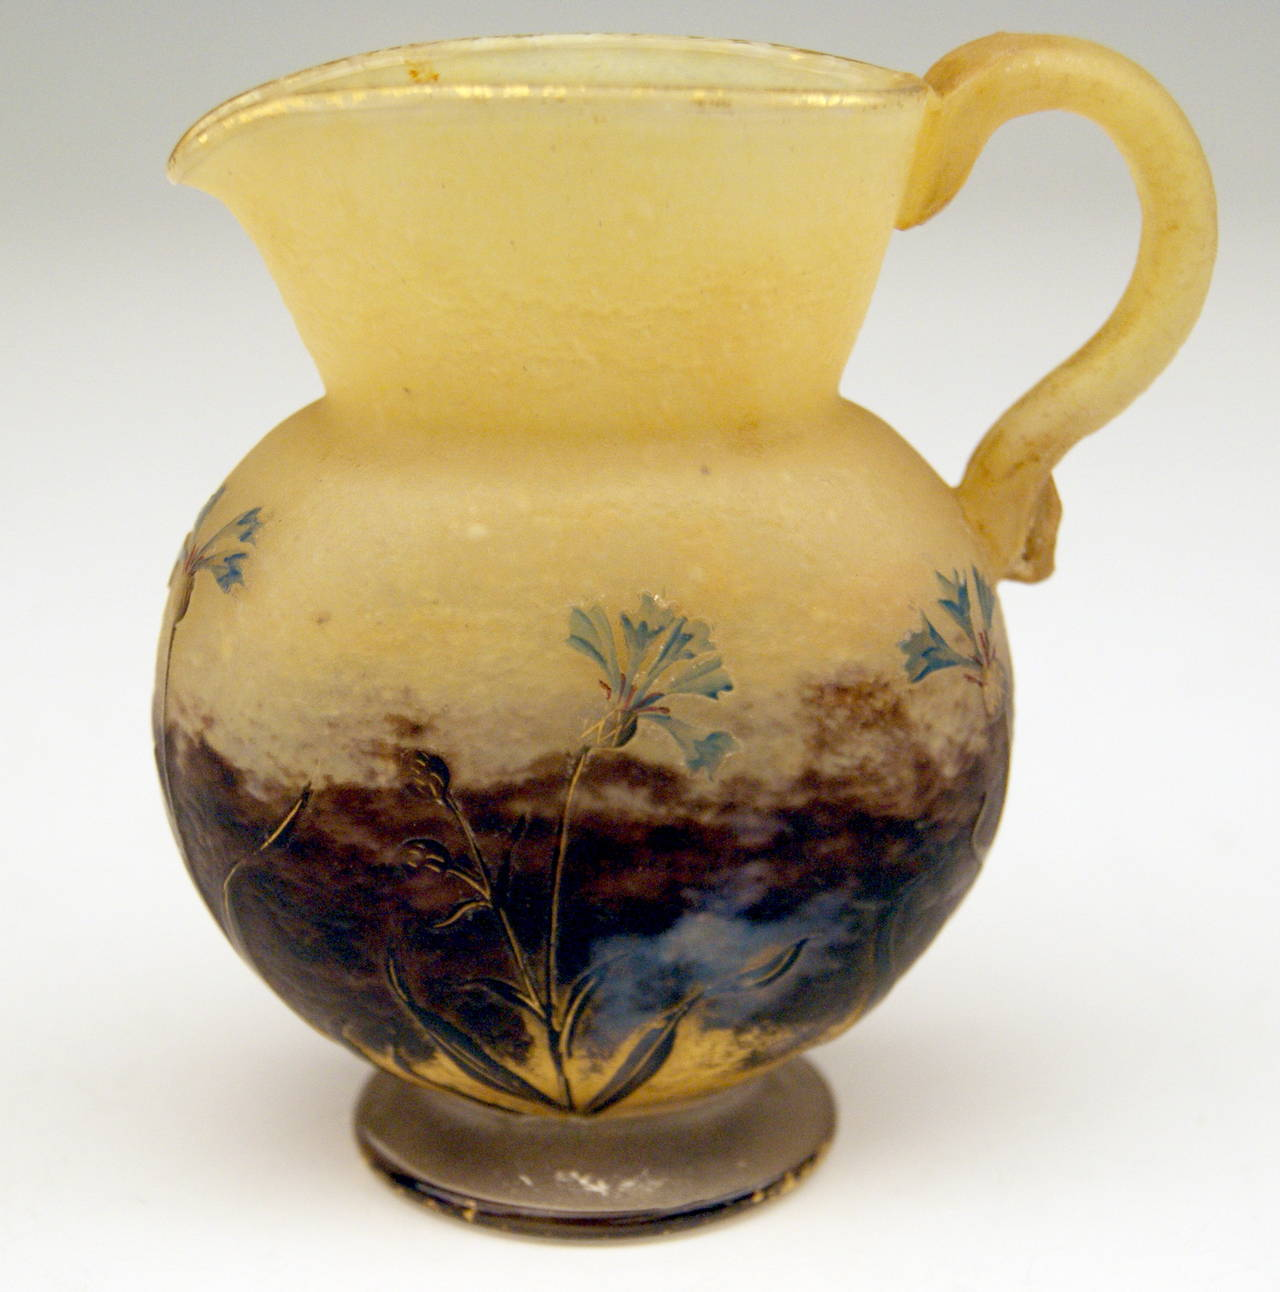 19th Century Daum Nancy Small Jug with Cornflowers Art Nouveau France Lorraine c. 1900 For Sale